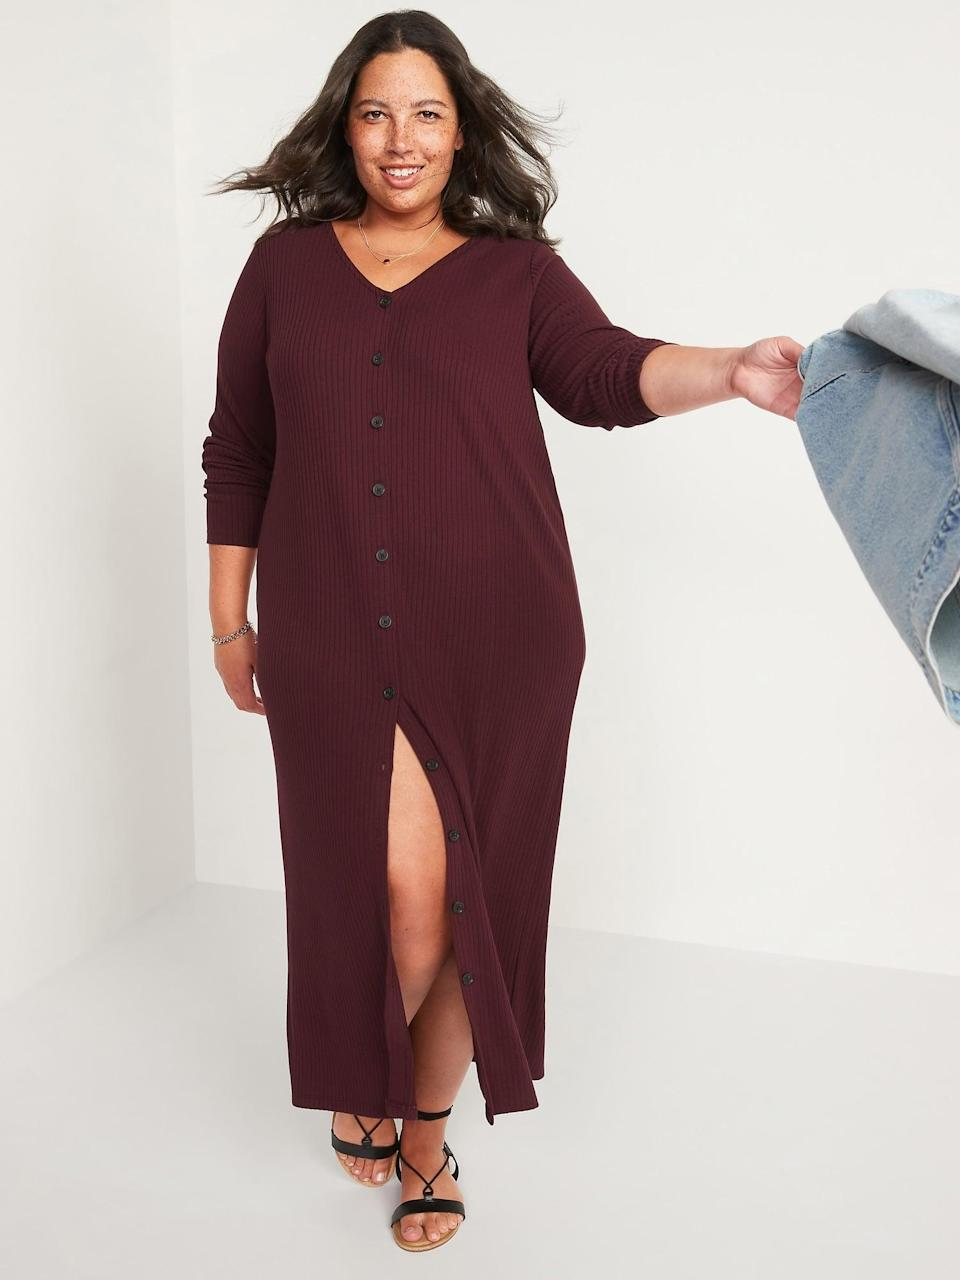 <p>This <span>Old Navy Rib-Knit Cardigan Sweater Midi Dress</span> ($45) is what to wear when you don't know what to wear. It's comfortable and easy but still looks put together. Sign us up!</p>